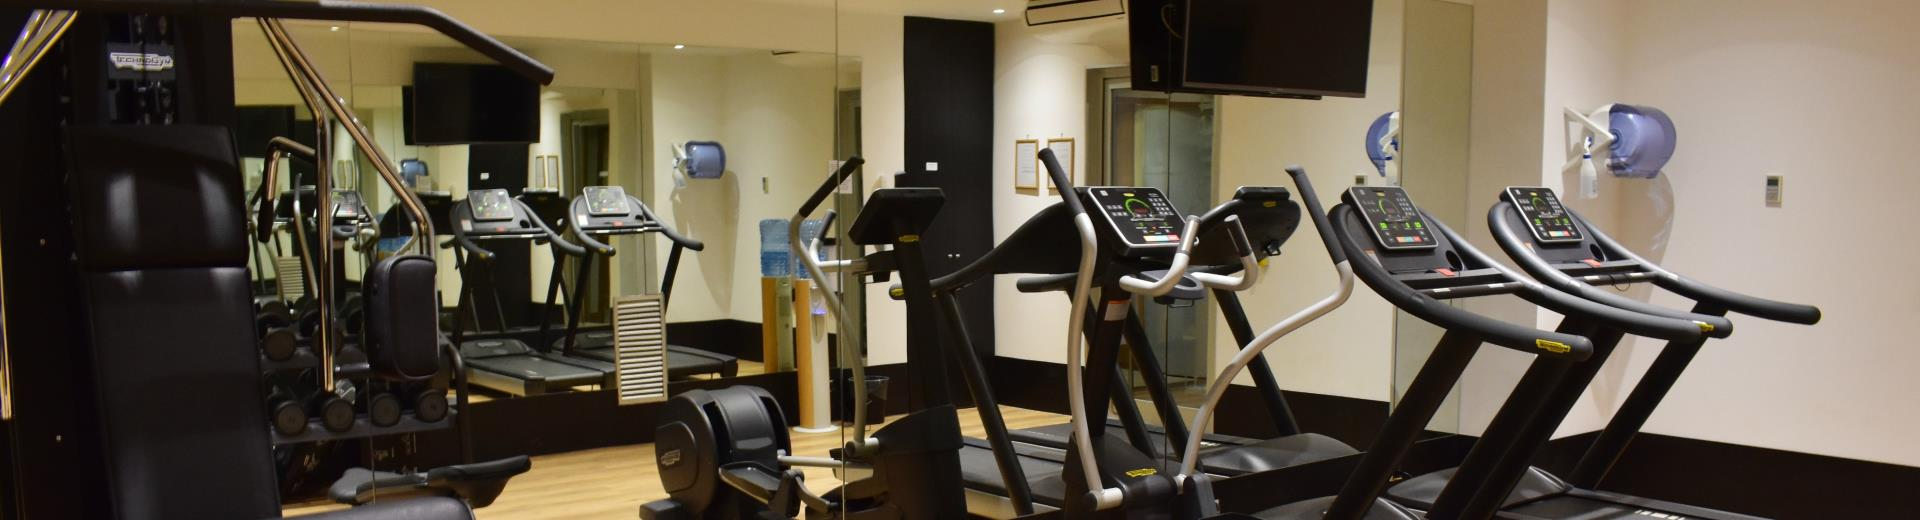 Centro fitness - Hotel President